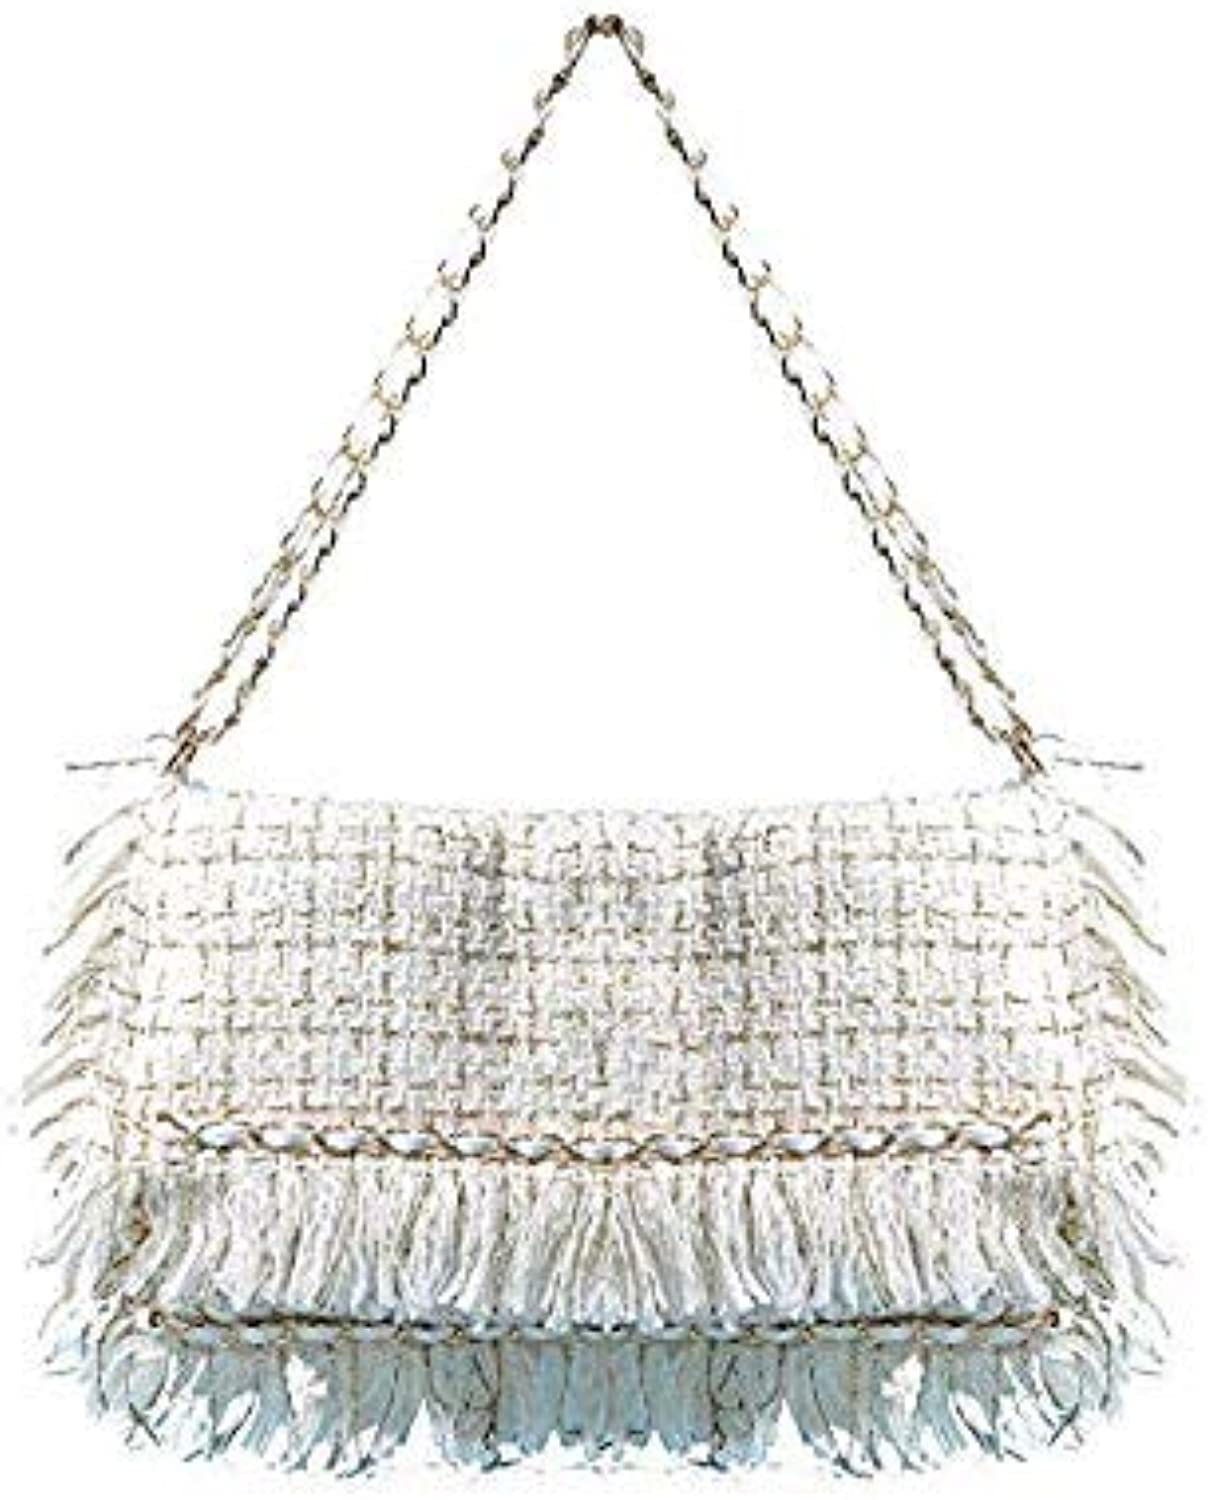 Bloomerang ROYI ICE 2018 New Fringe Single Women Bags Fashion Wool Upper Fold Over Messenger Bags No Pocket Cover Ladies Small Large Bags color Beige Big